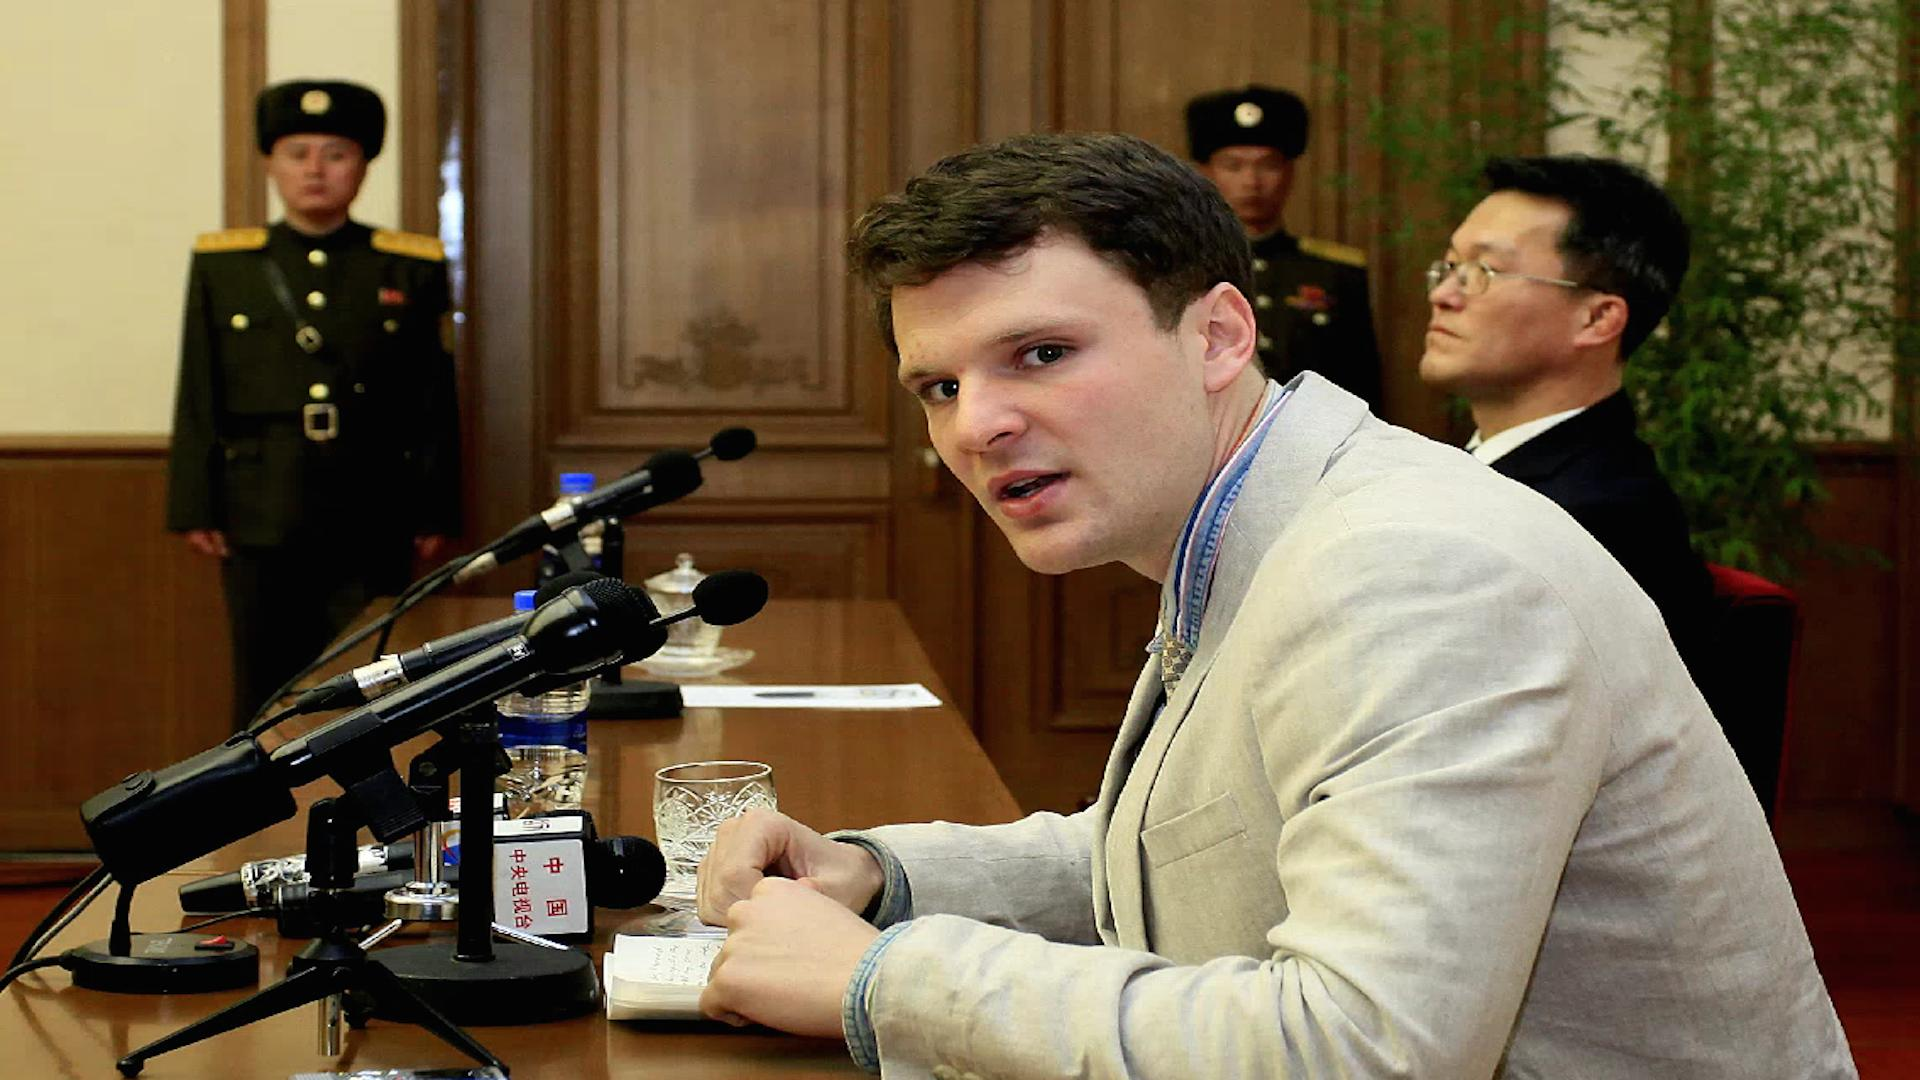 North Korea sentences former Va. man to 10 years of hard labor